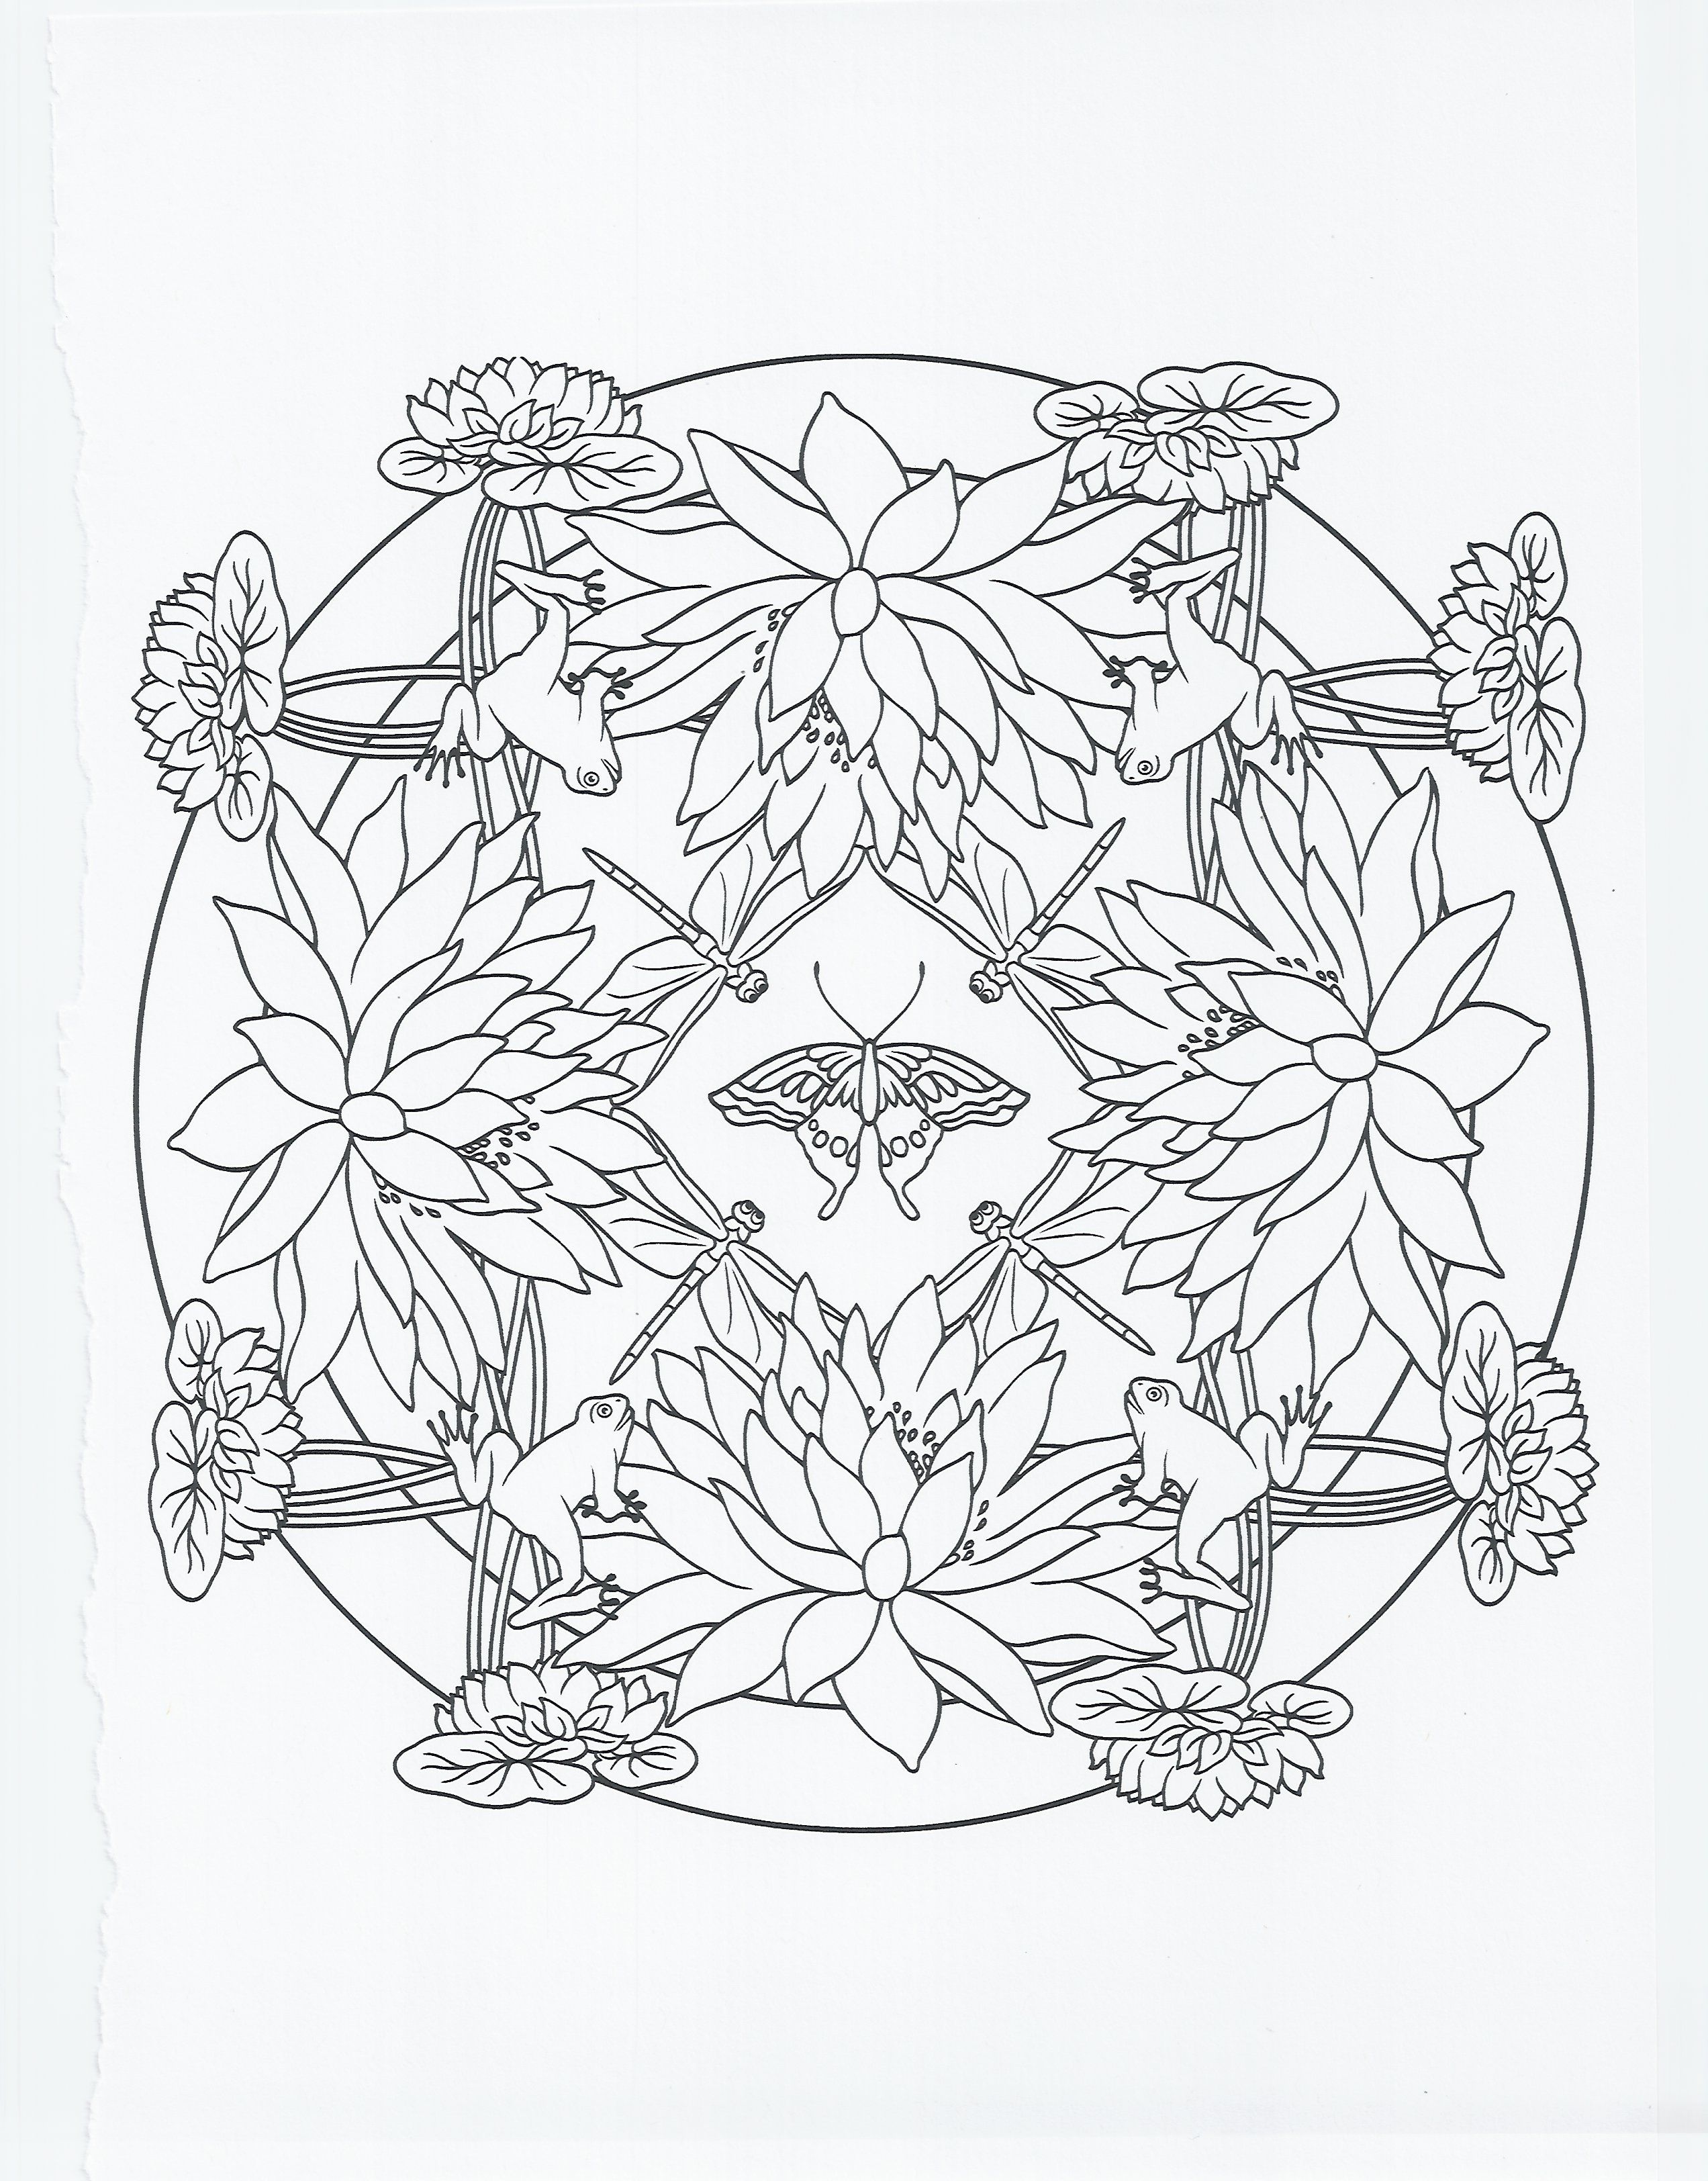 Frog Coloring Pages Colour me! Pinterest Frogs and